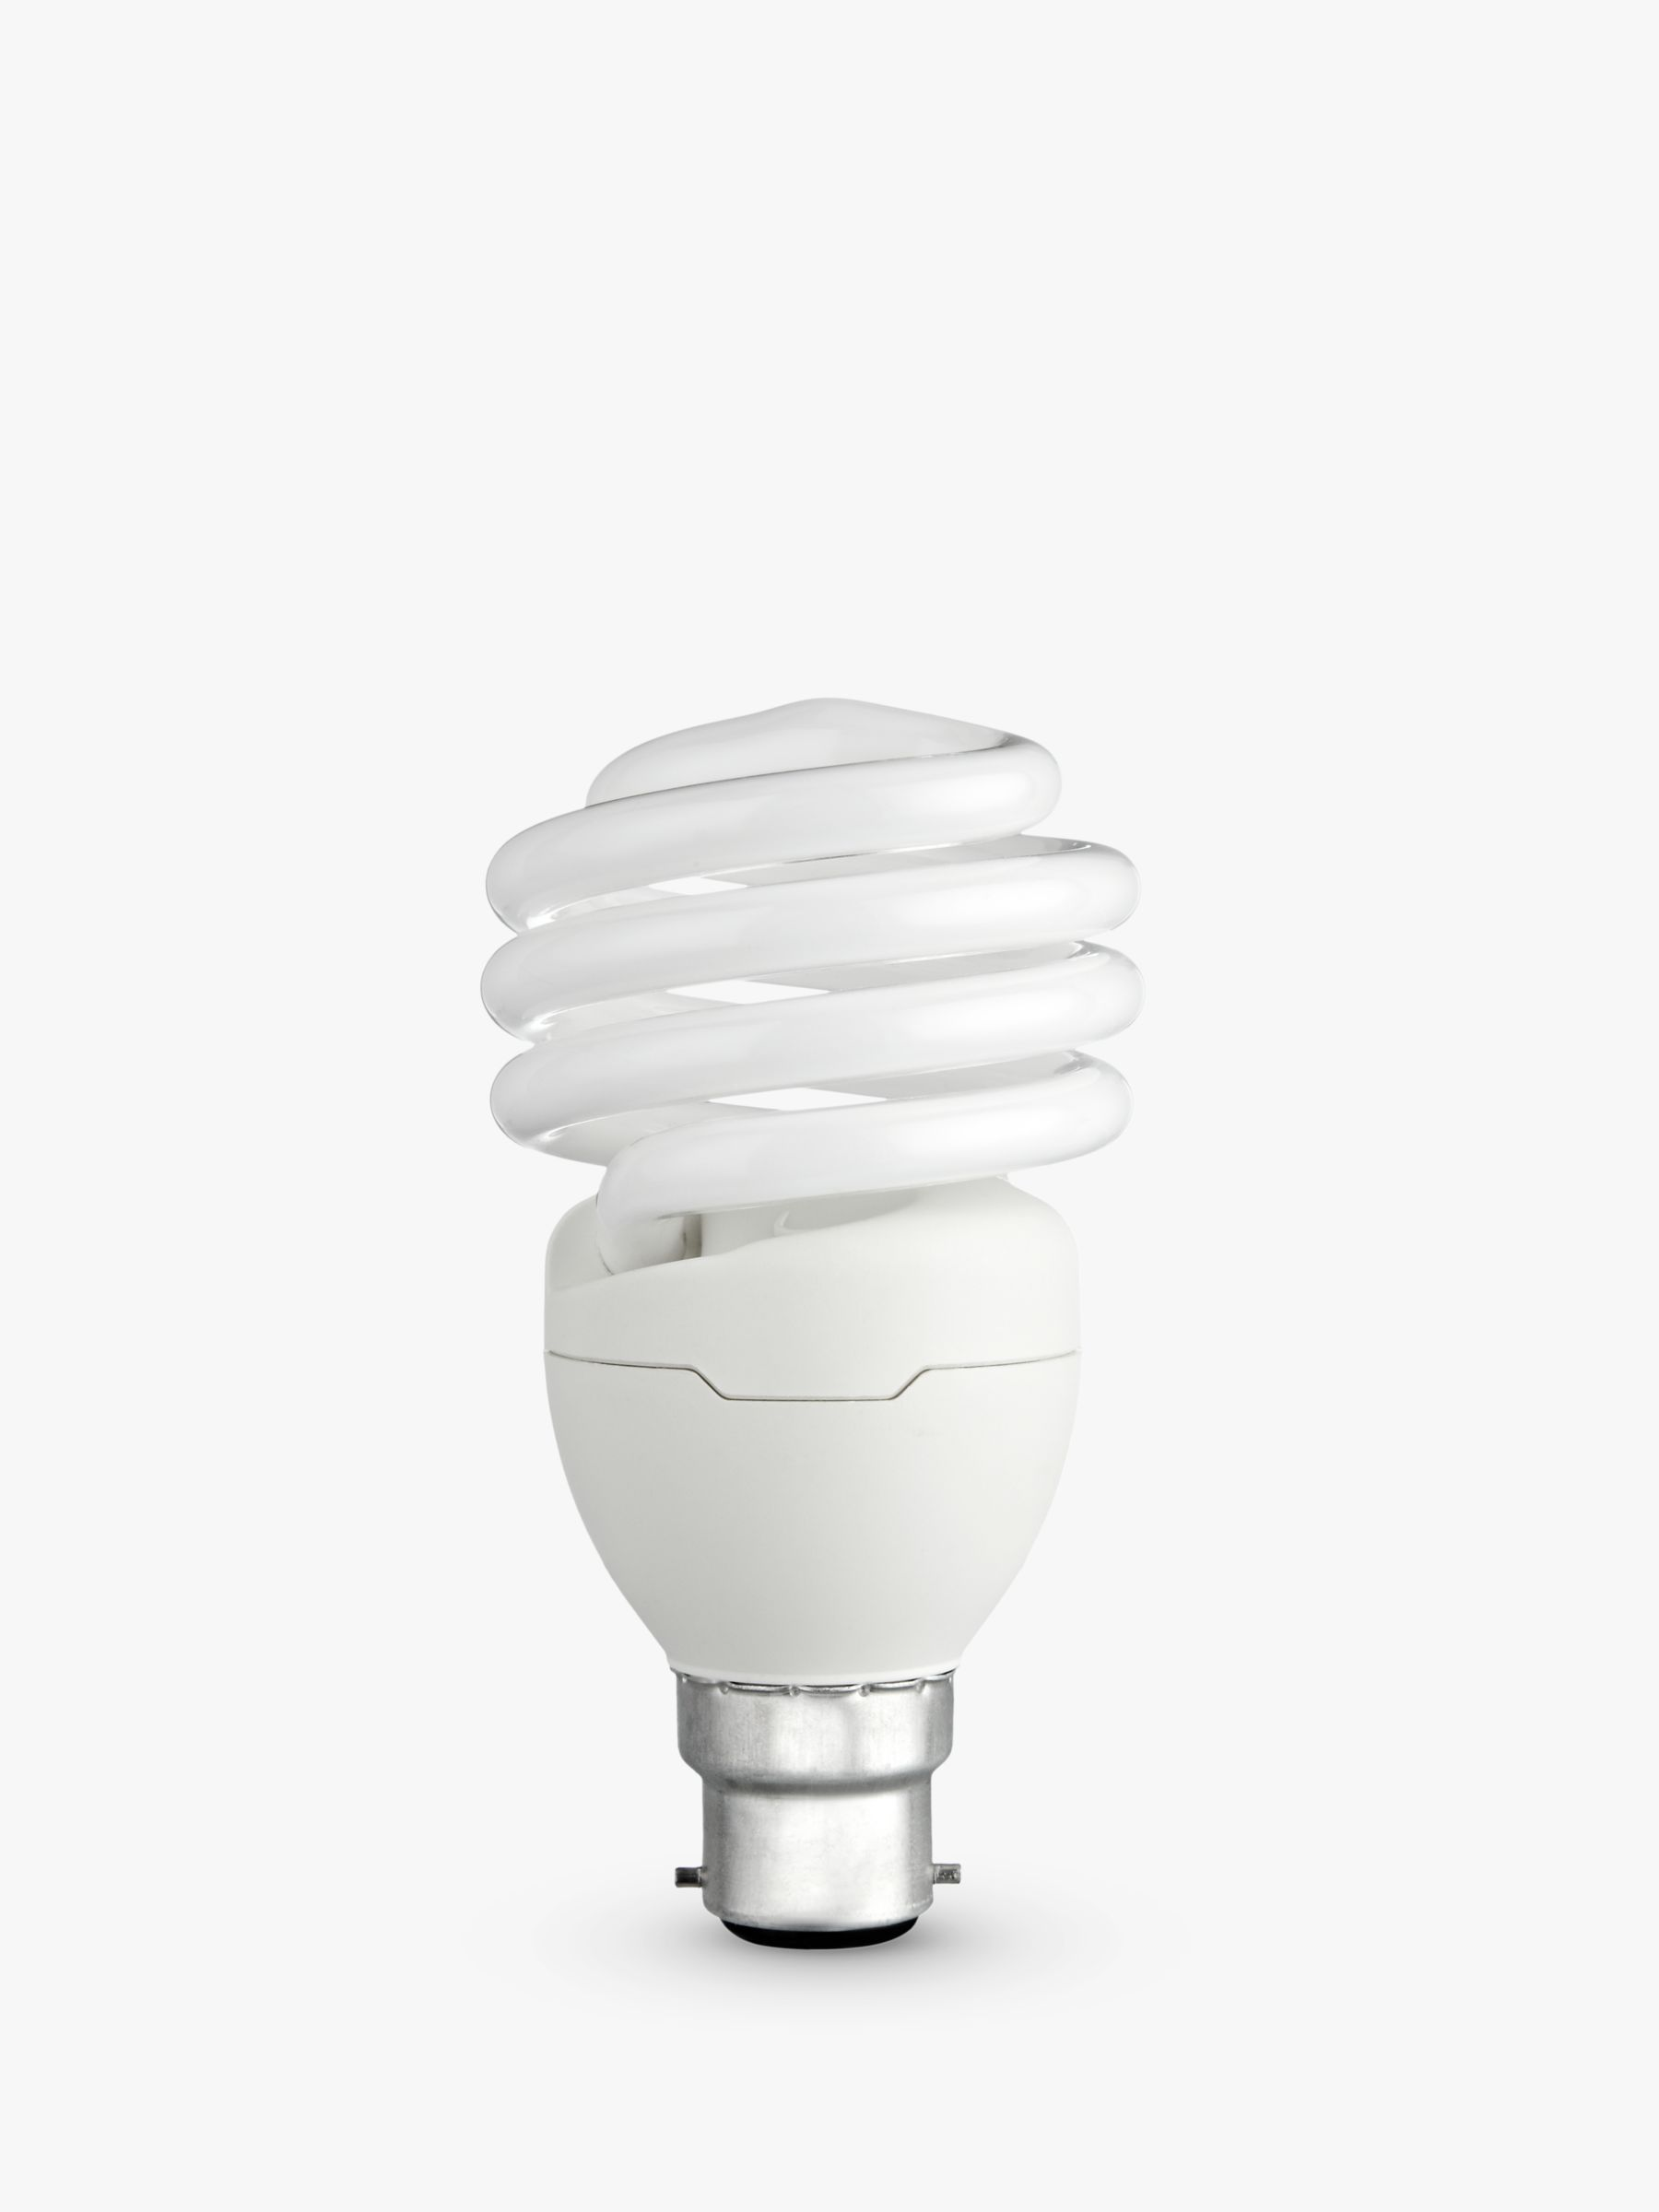 fantastic light back this spiral the tripping bulb debate bulbs environment cfl nature over lighting no